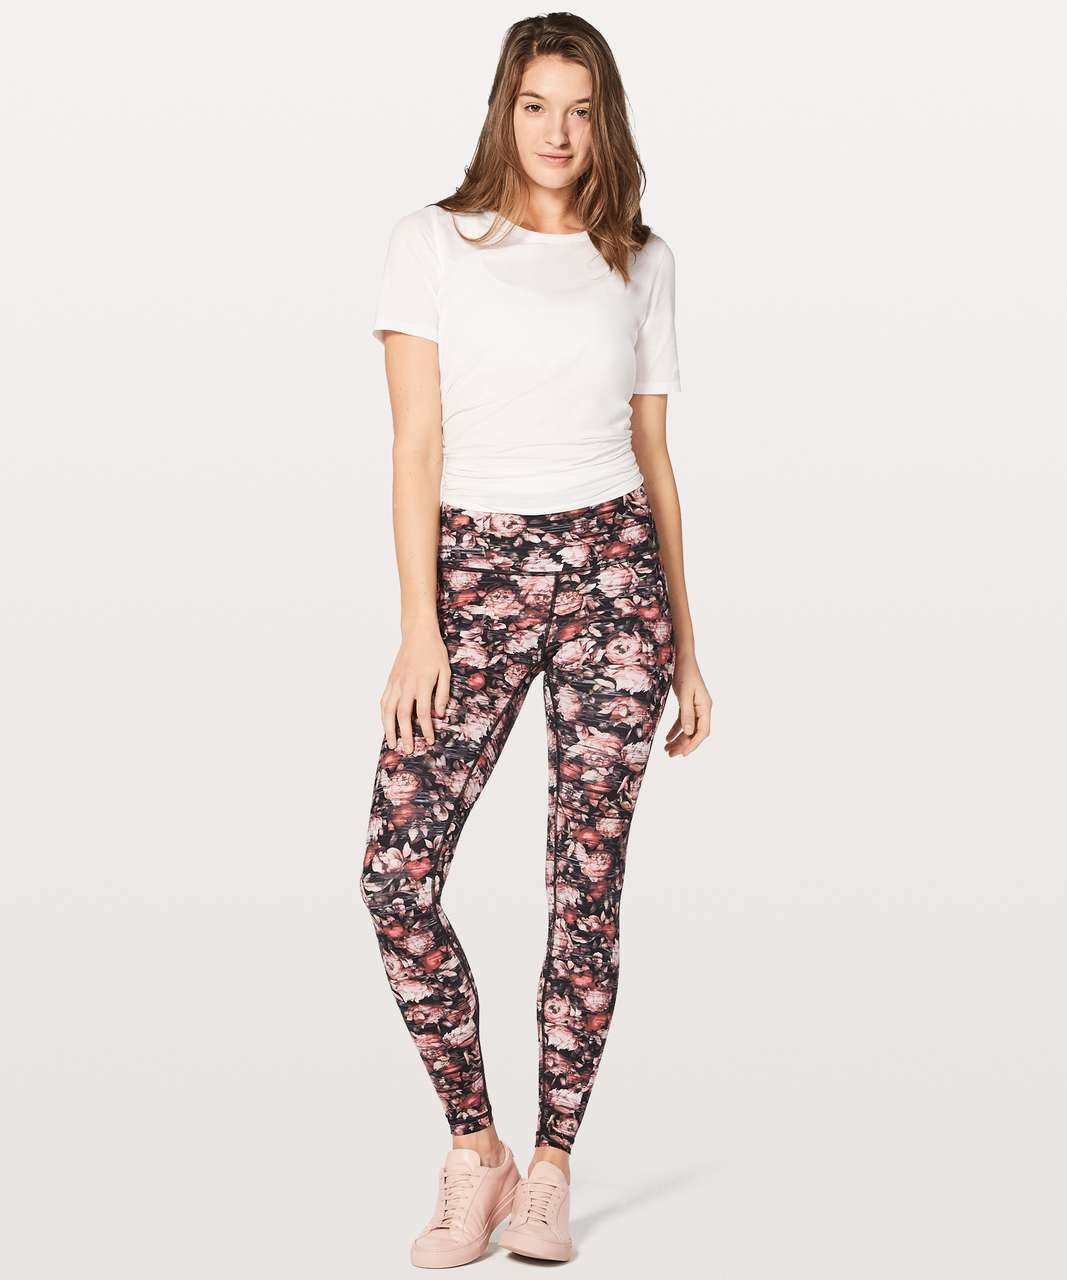 Lululemon Wunder Under Hi-Rise Tight *Nulux - Peony Multi